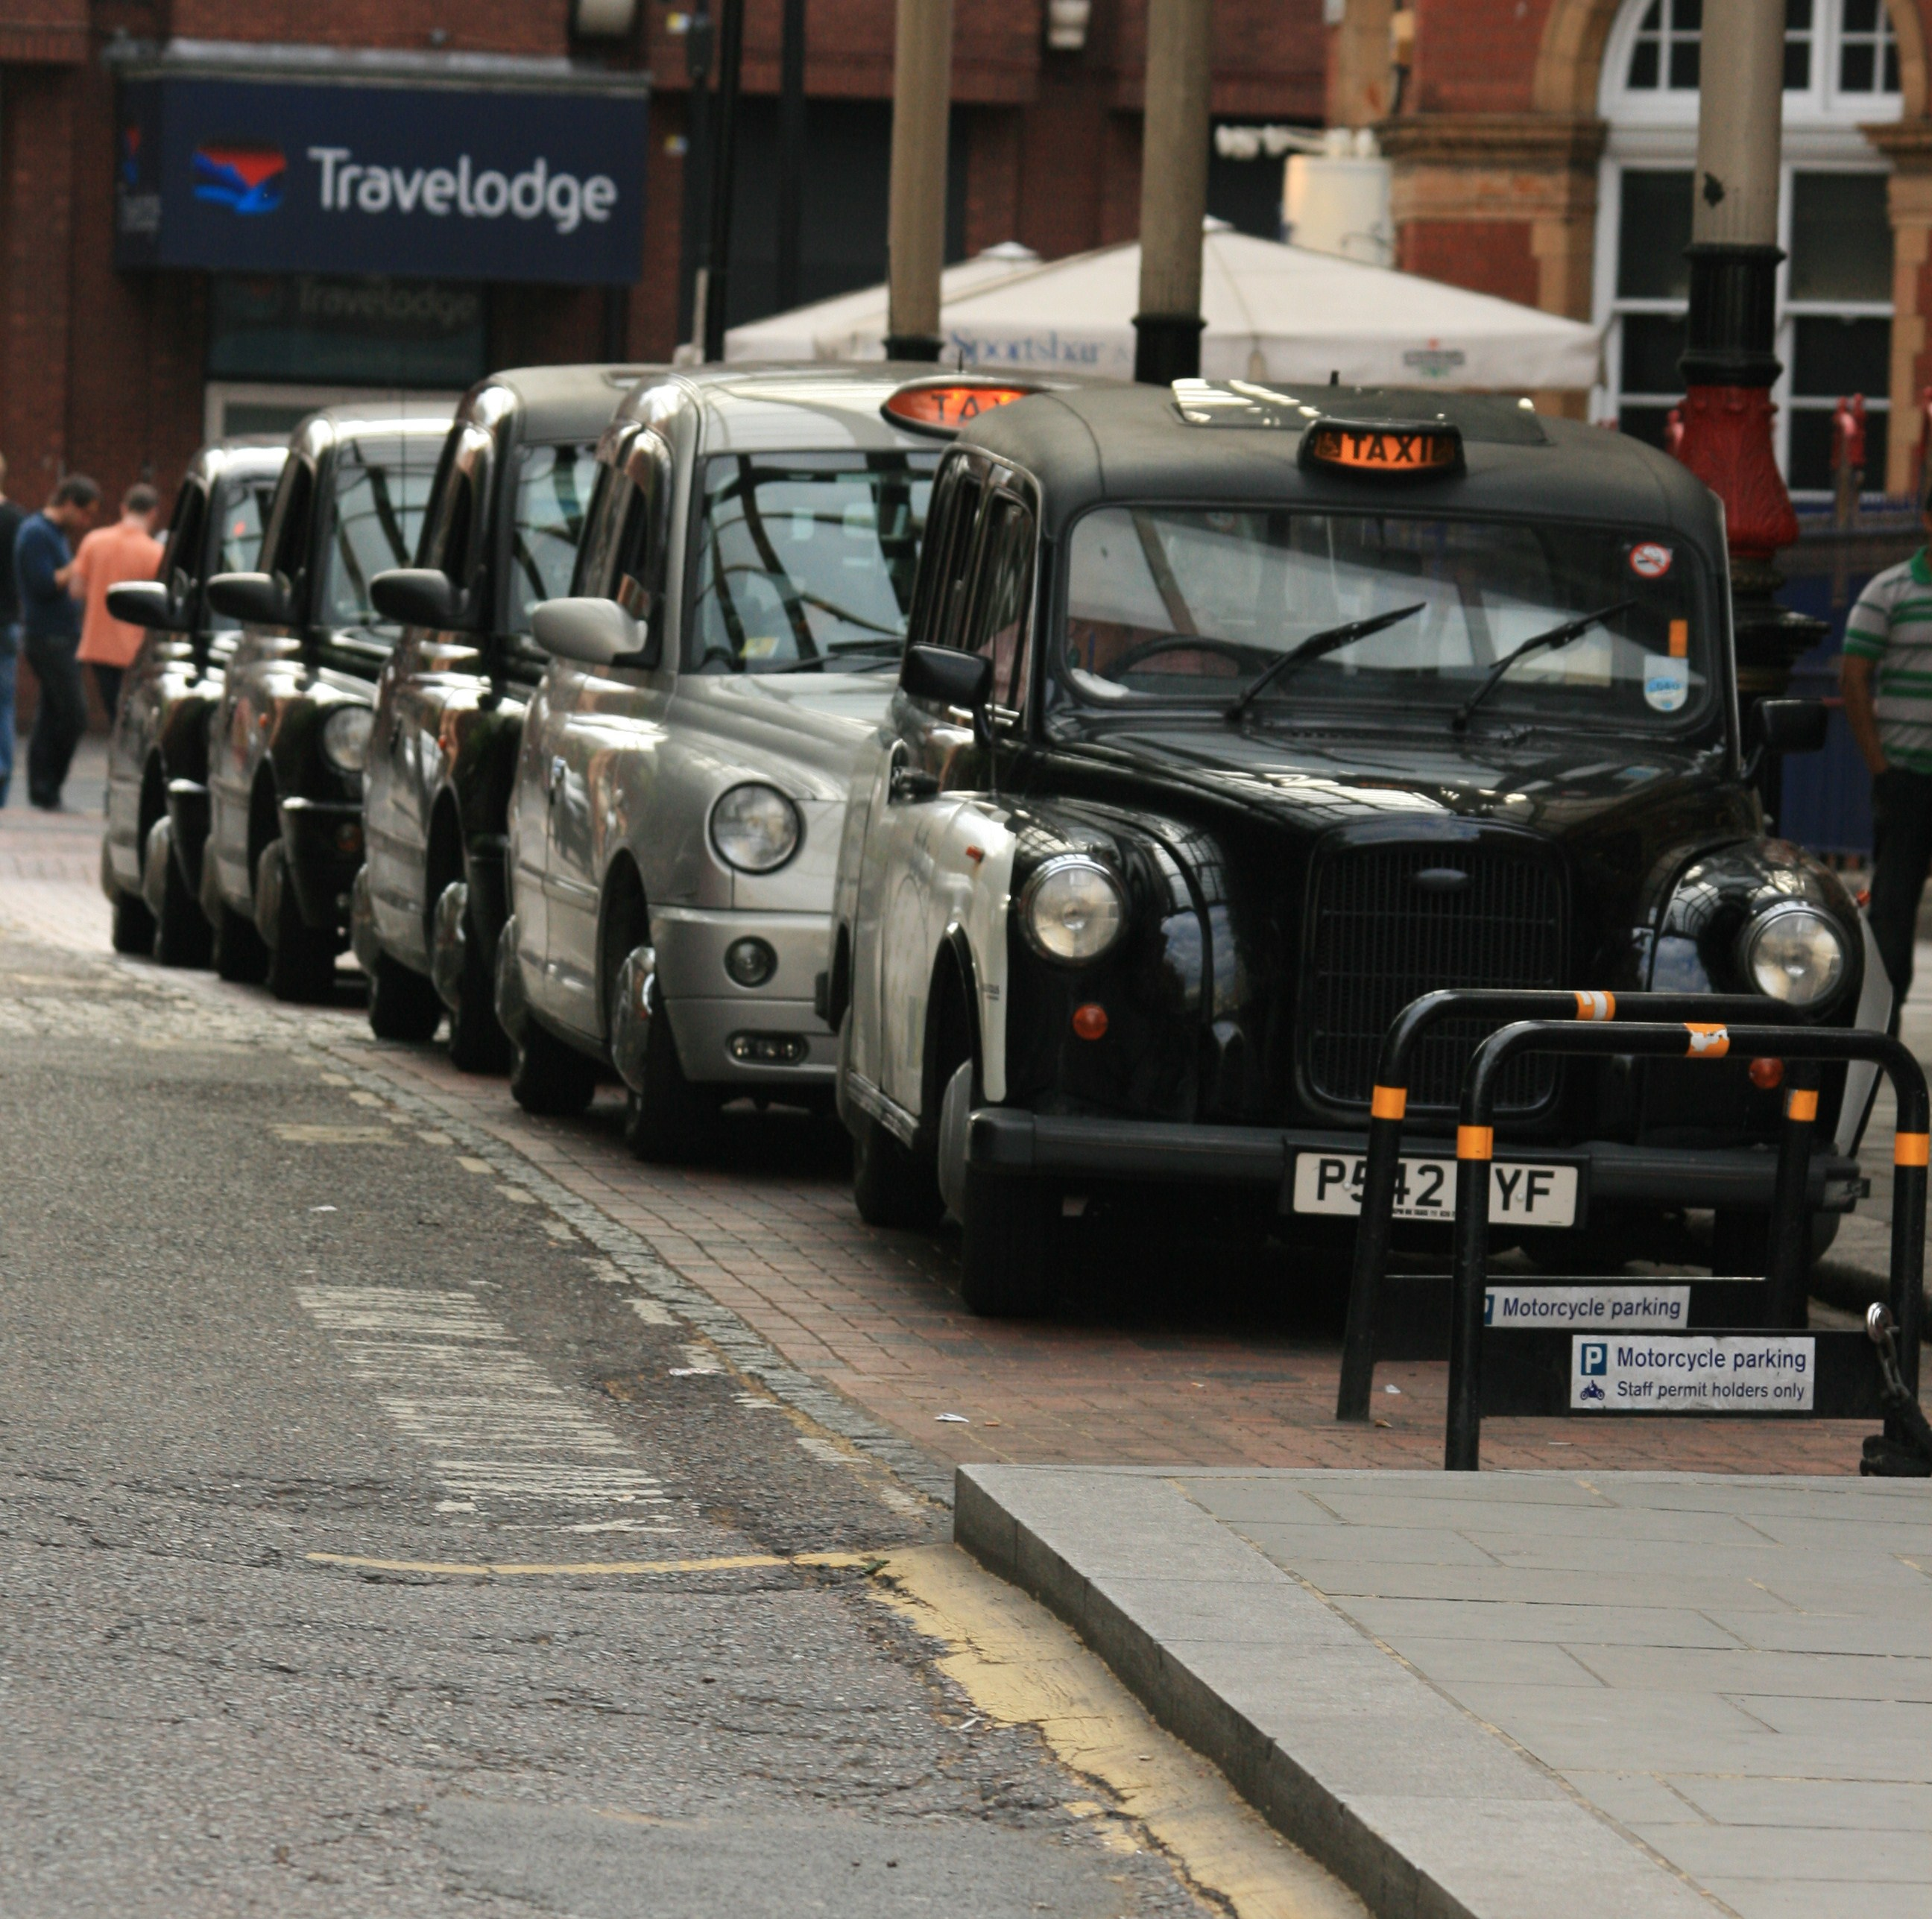 driving, conviction, black cab, insurance